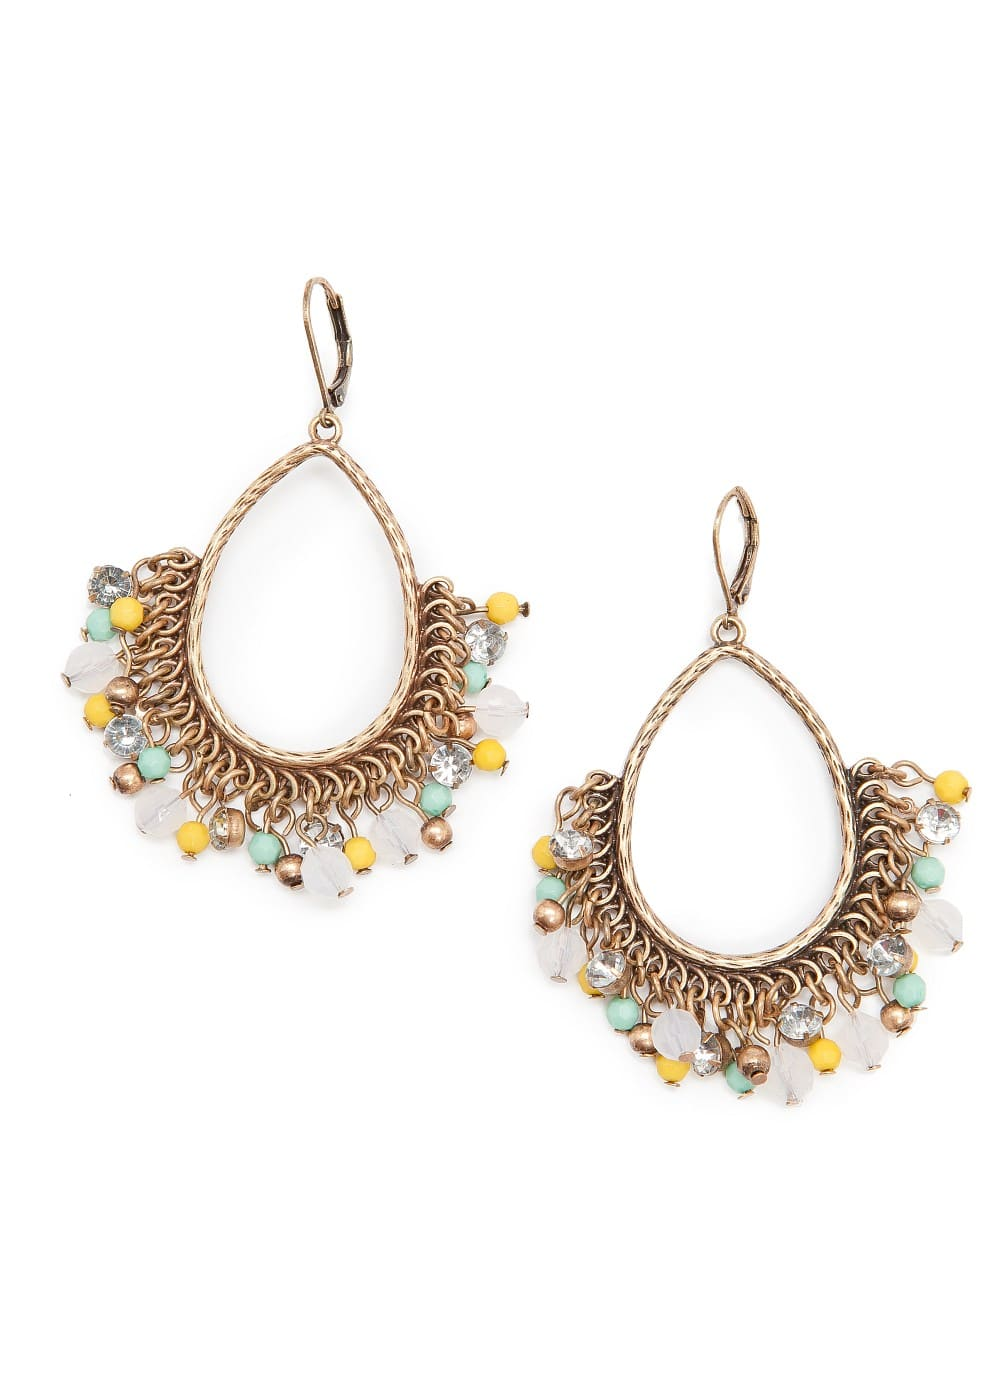 Beaded ethnic earrings